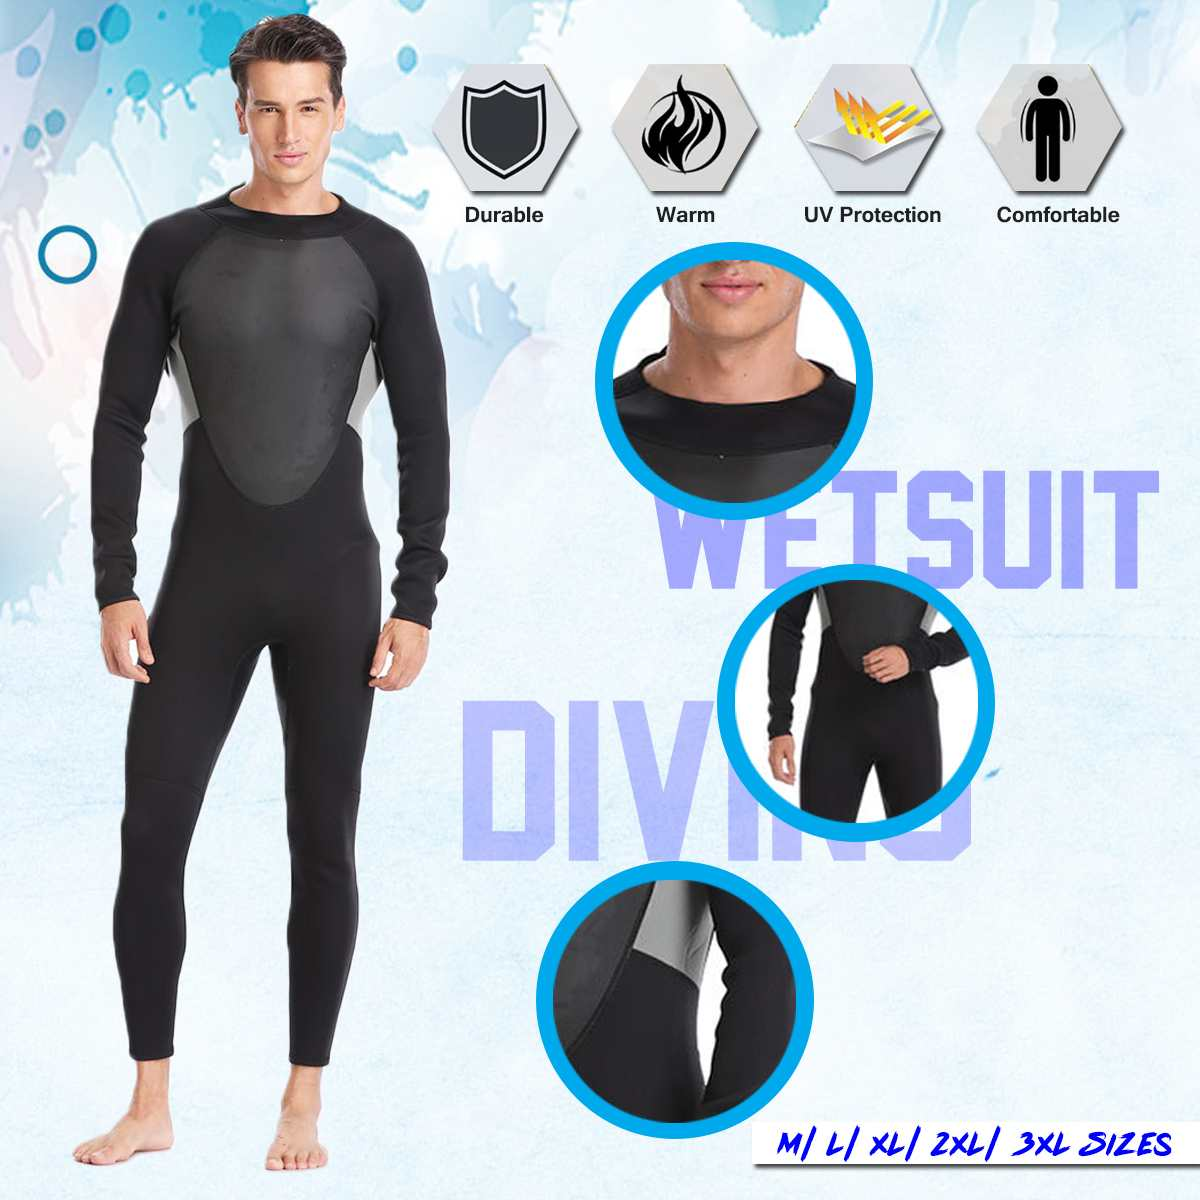 3MM MEN WetSuit M/L/XL/2XL/3XL One Piece Neoprene Full Body suit Super stretch Diving Suit Swim Surf Snorkeling Diving Surfing3MM MEN WetSuit M/L/XL/2XL/3XL One Piece Neoprene Full Body suit Super stretch Diving Suit Swim Surf Snorkeling Diving Surfing